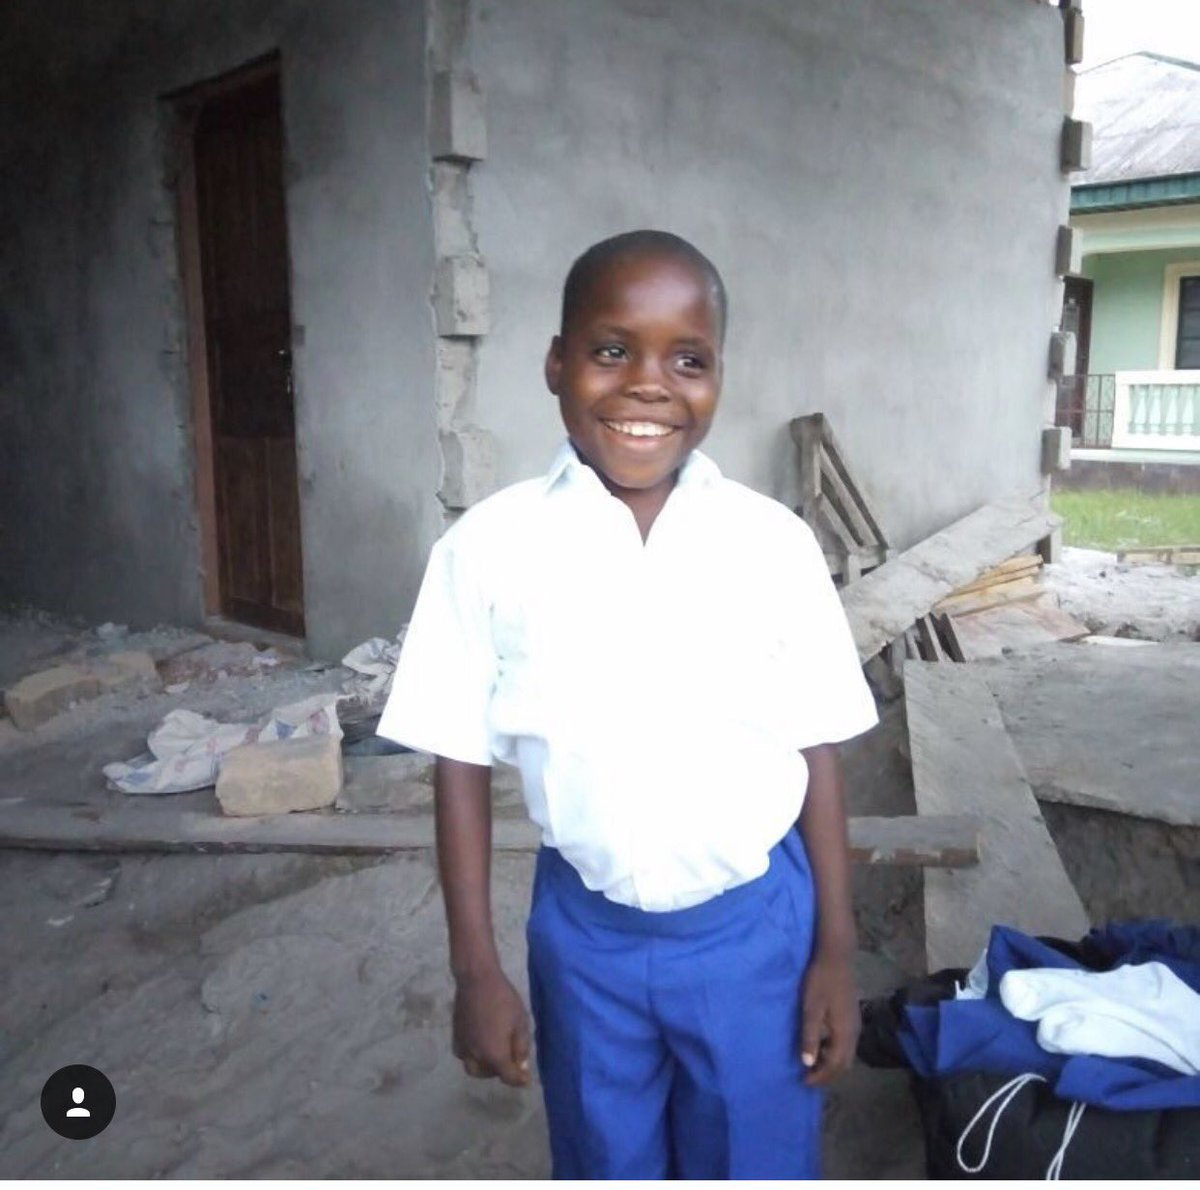 Davido Builds A House For That Little Child Who Sang 'IF' (Photos)